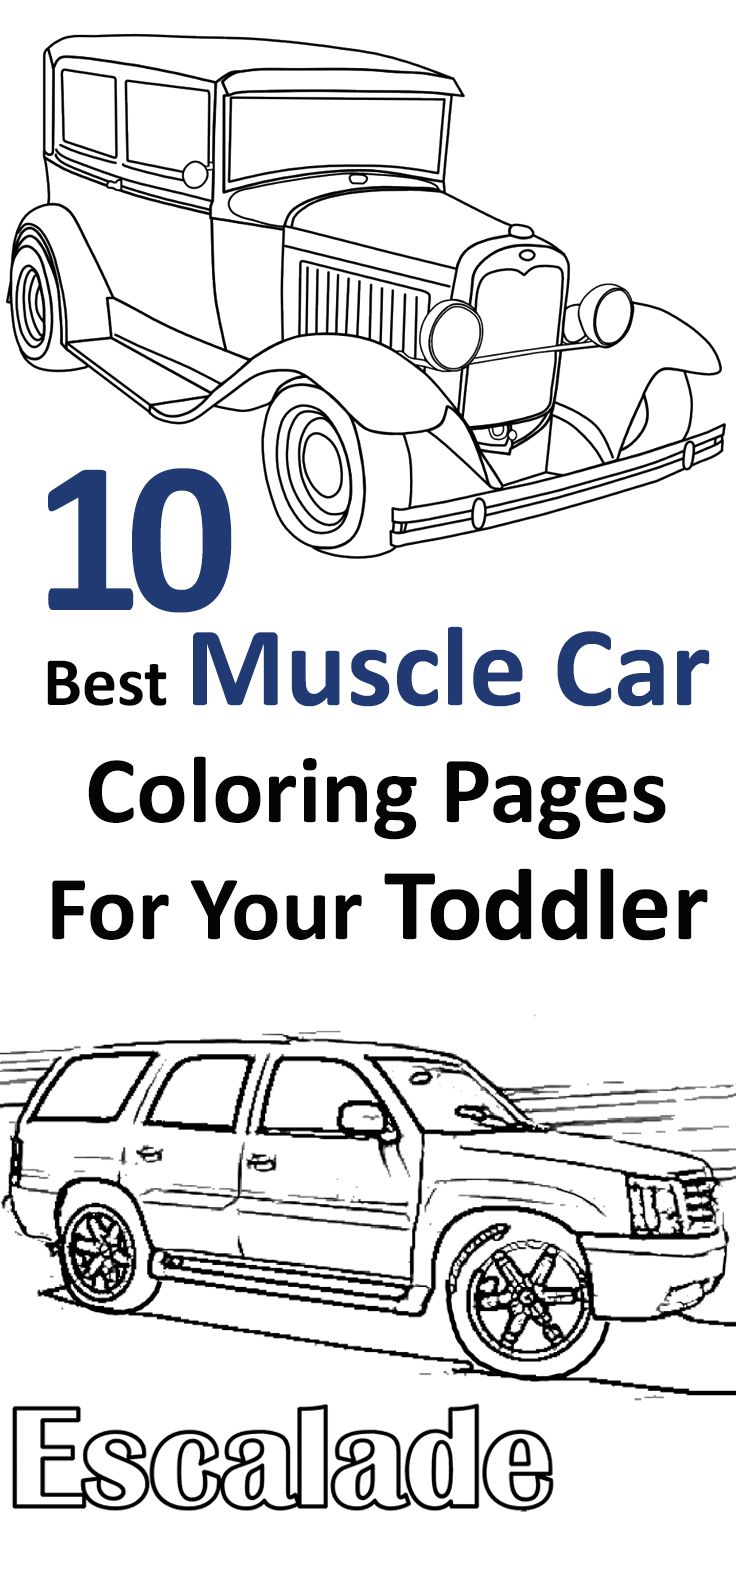 Swear word coloring book sarah bigwood - Top 25 Free Printable Muscle Car Coloring Pages Online